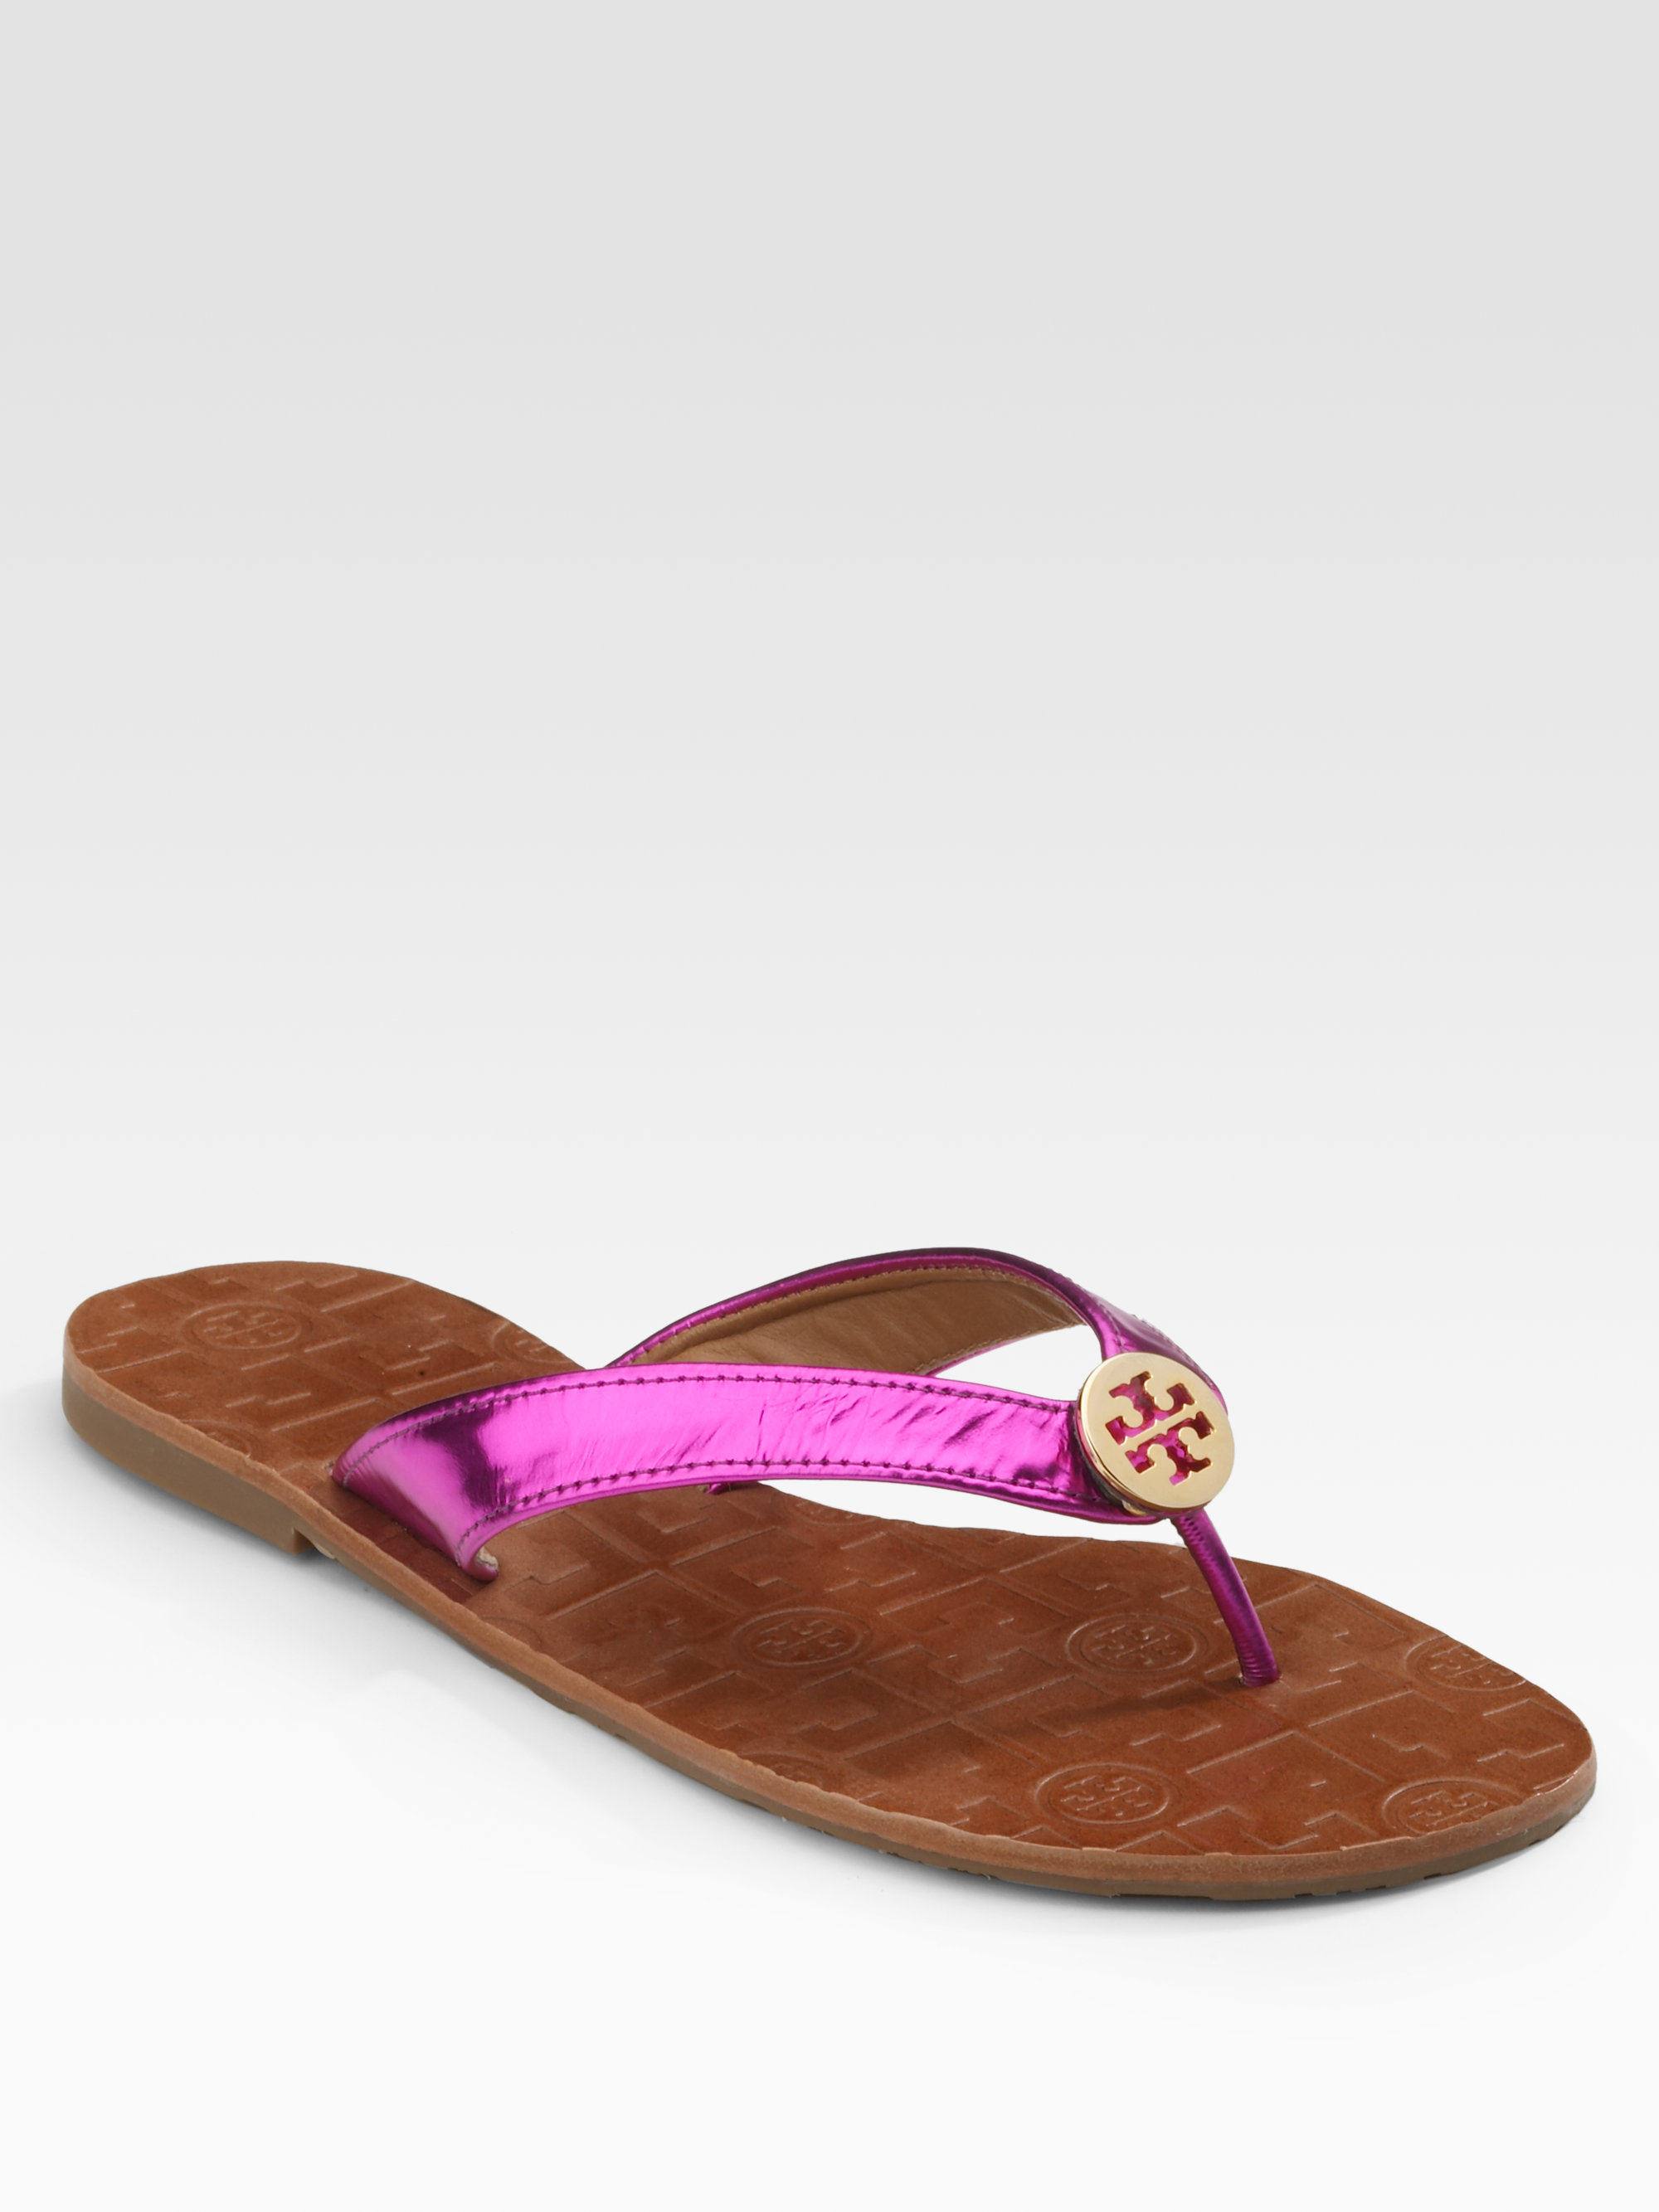 d99b838b27ec ... discount lyst tory burch thora metallic leather thong sandals in pink  a25dc 1cb3e